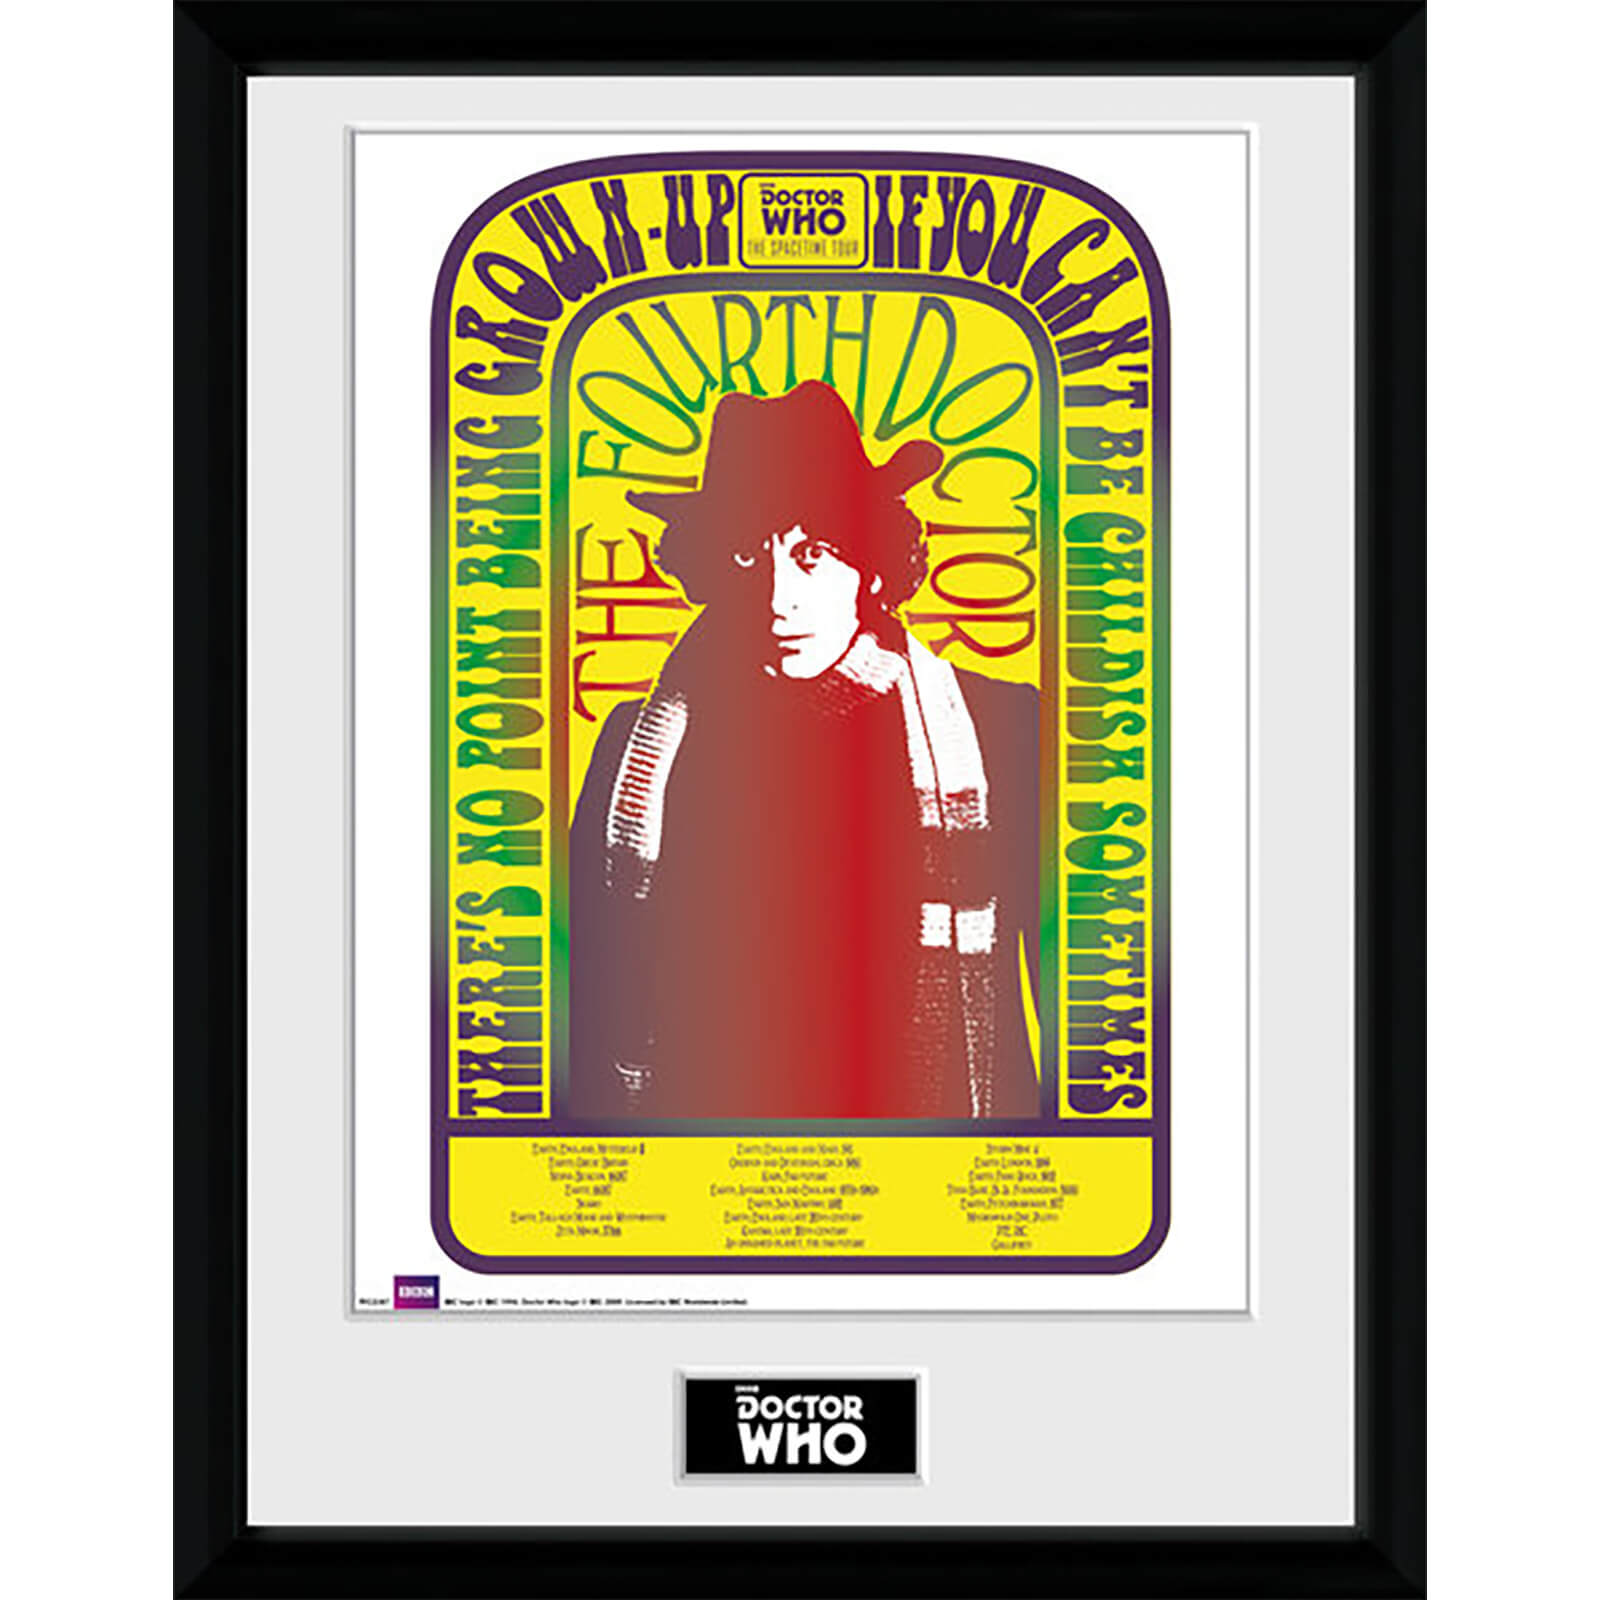 Doctor Who Spacetime Tour 4th Doctor - 16 x 12 Inches Framed Photograph